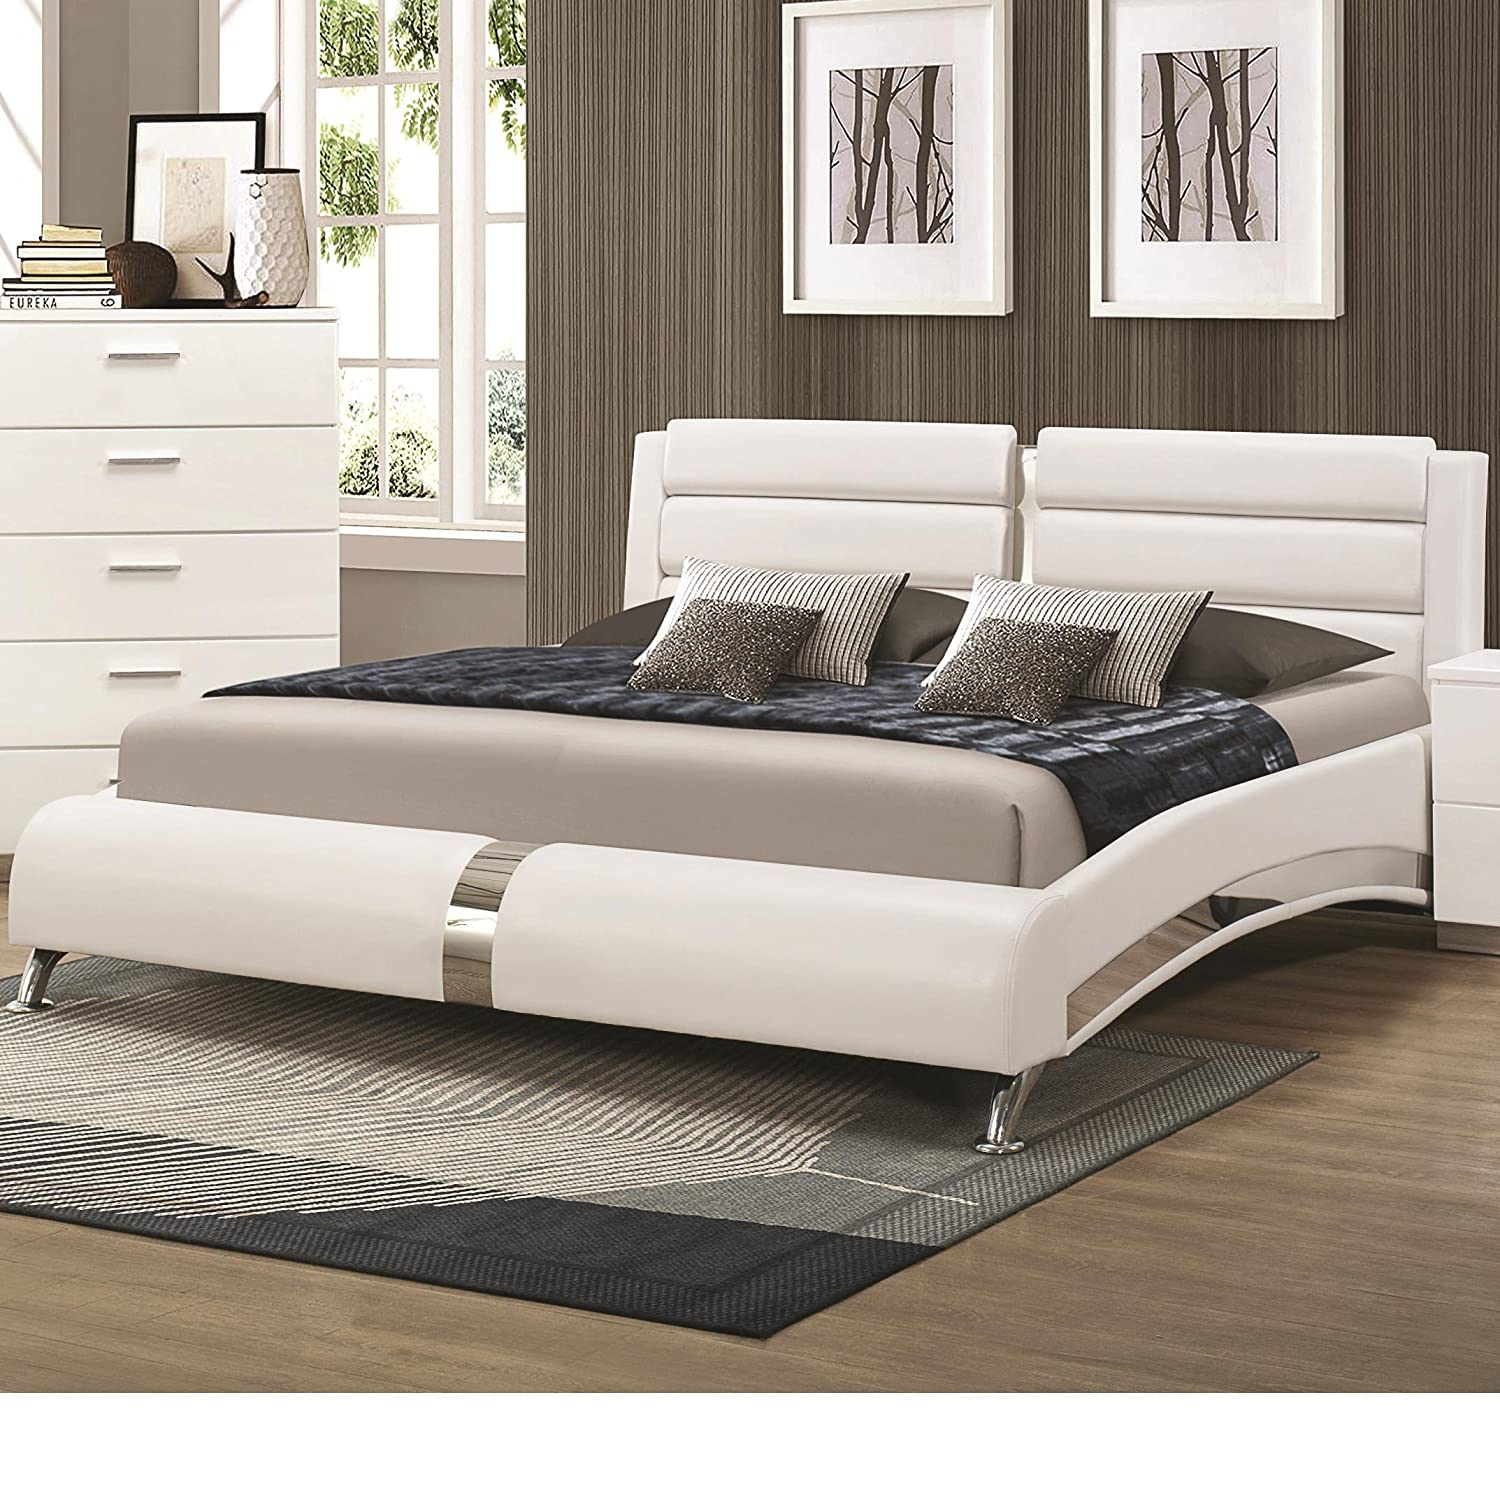 Amazoncom Coaster 300345KW White California King Size Bed With